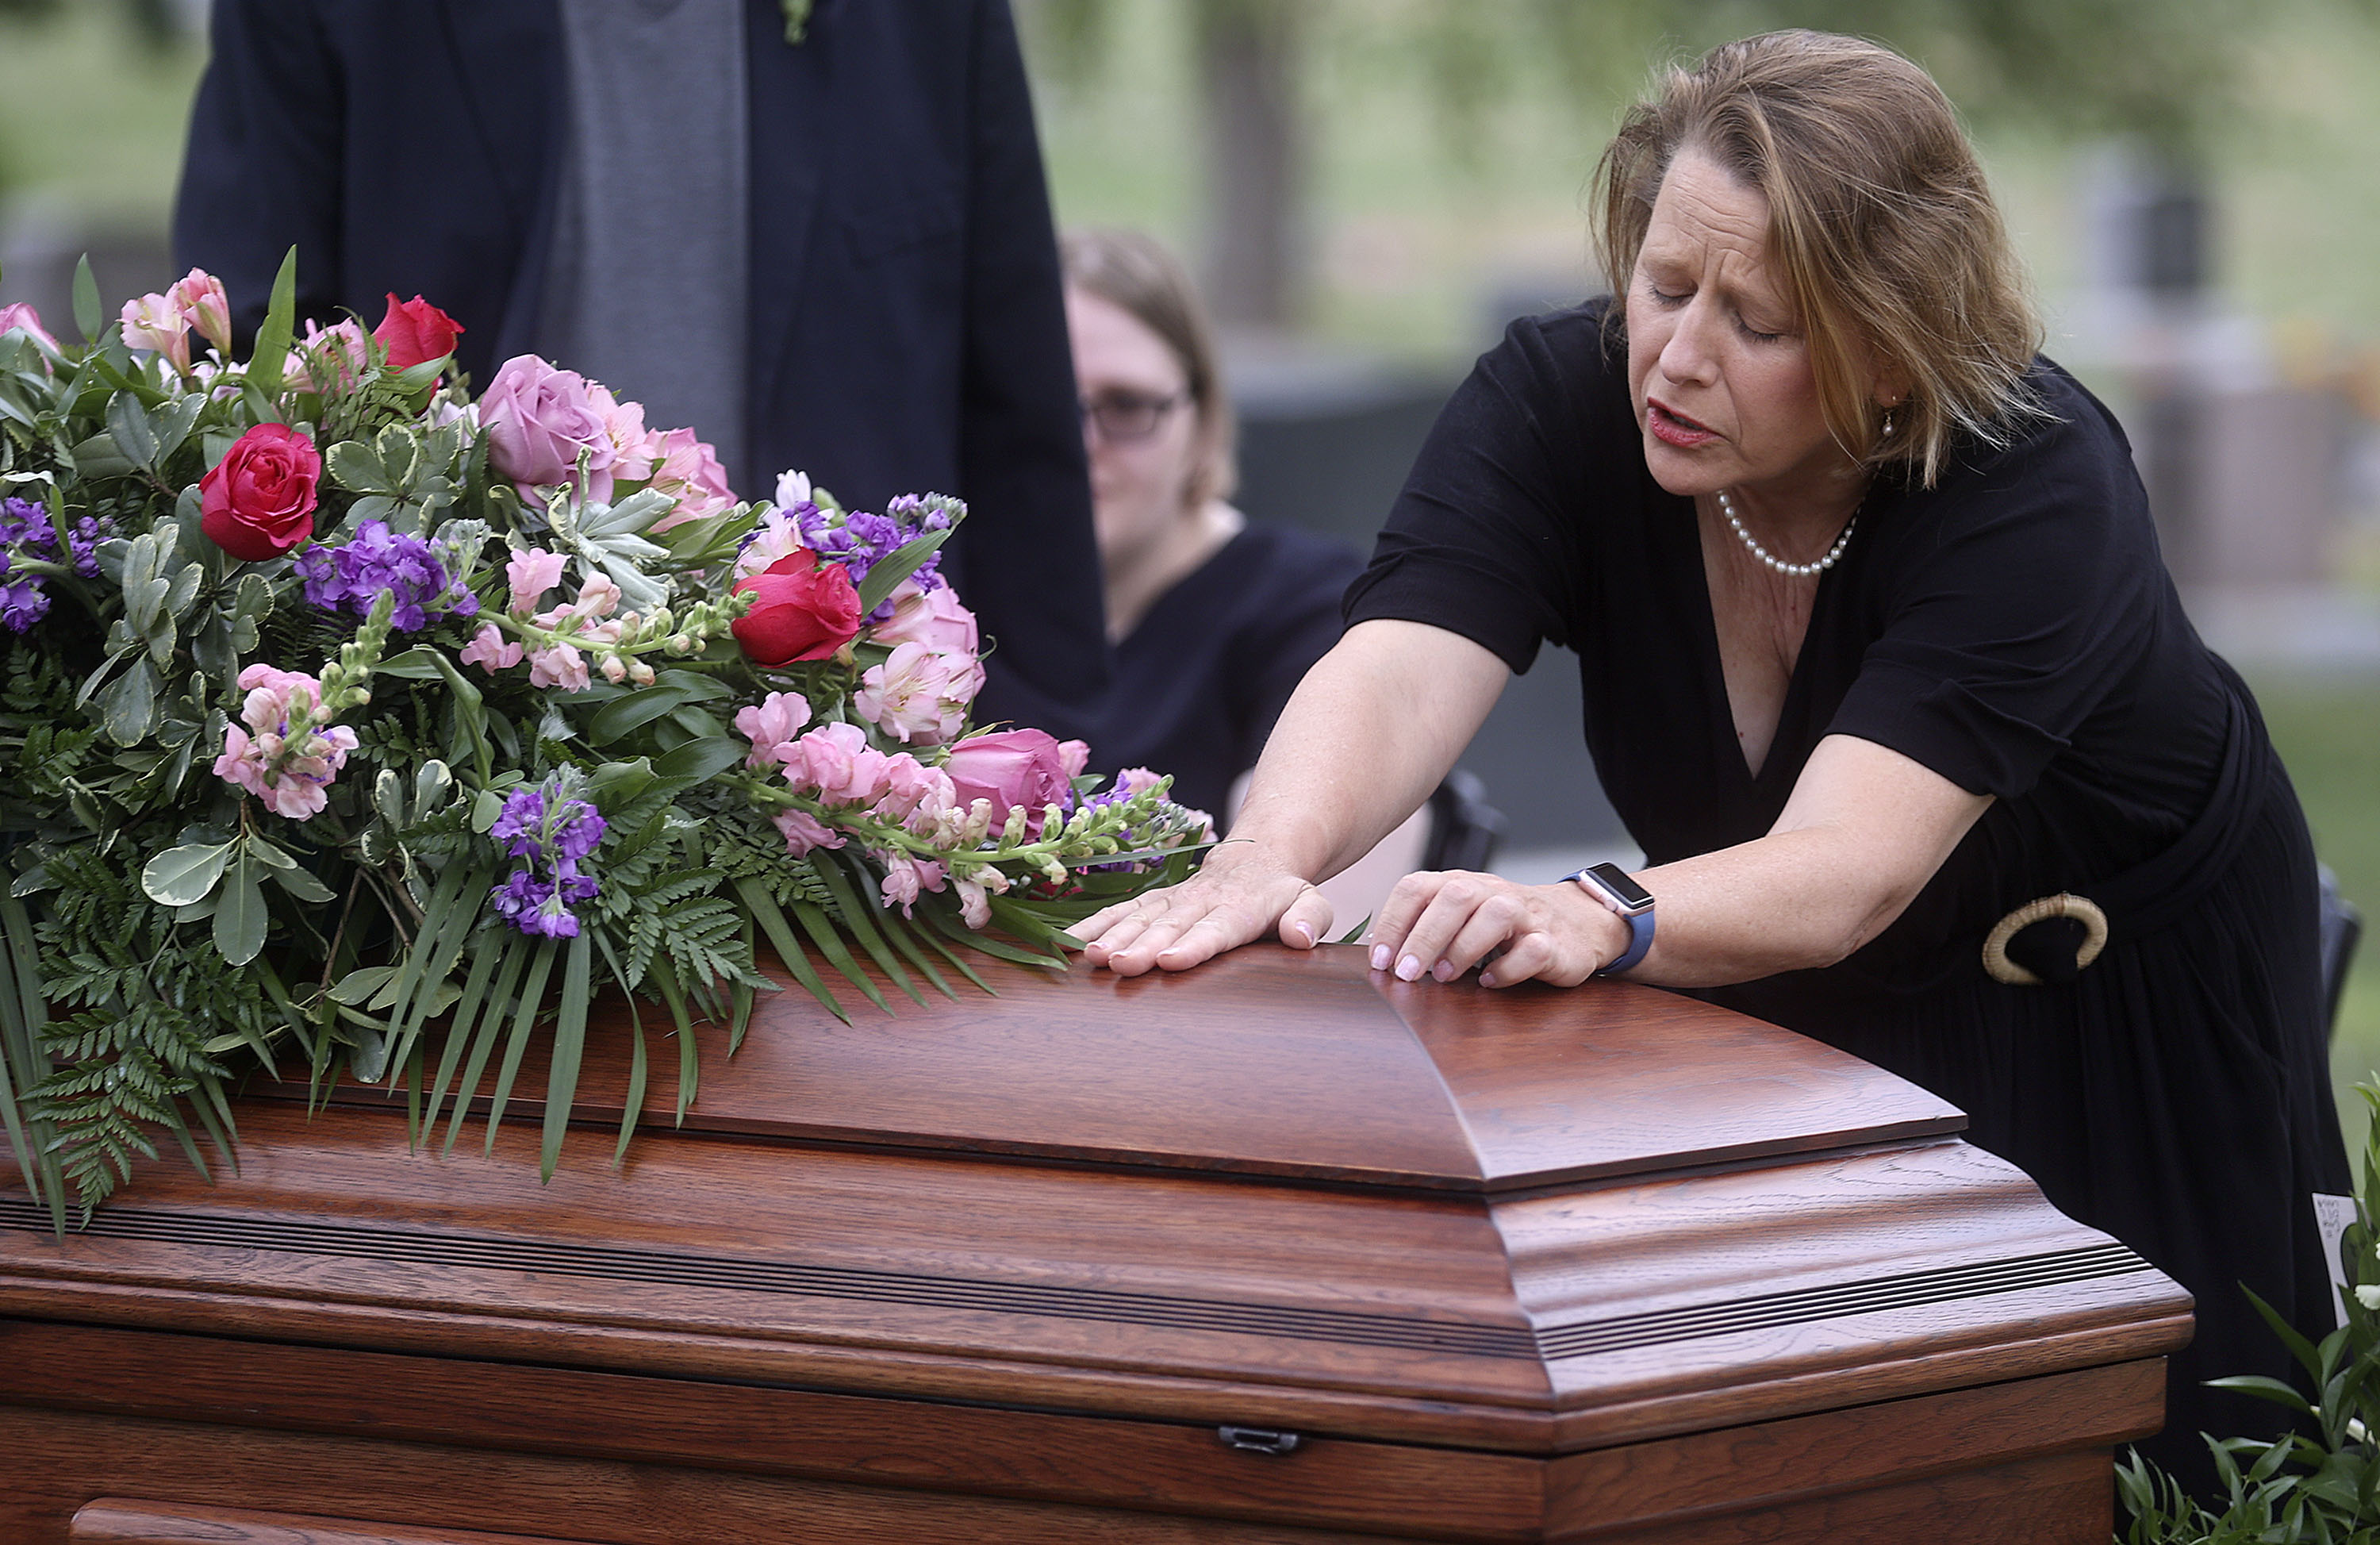 Tricia Wright grieves over the casket of her sister, Shawna Wright, who died of heat exhaustion while homeless, during ShawnaWright's interment at Mount Olivet Cemetery in Salt Lake City on Tuesday, July 13, 2021.